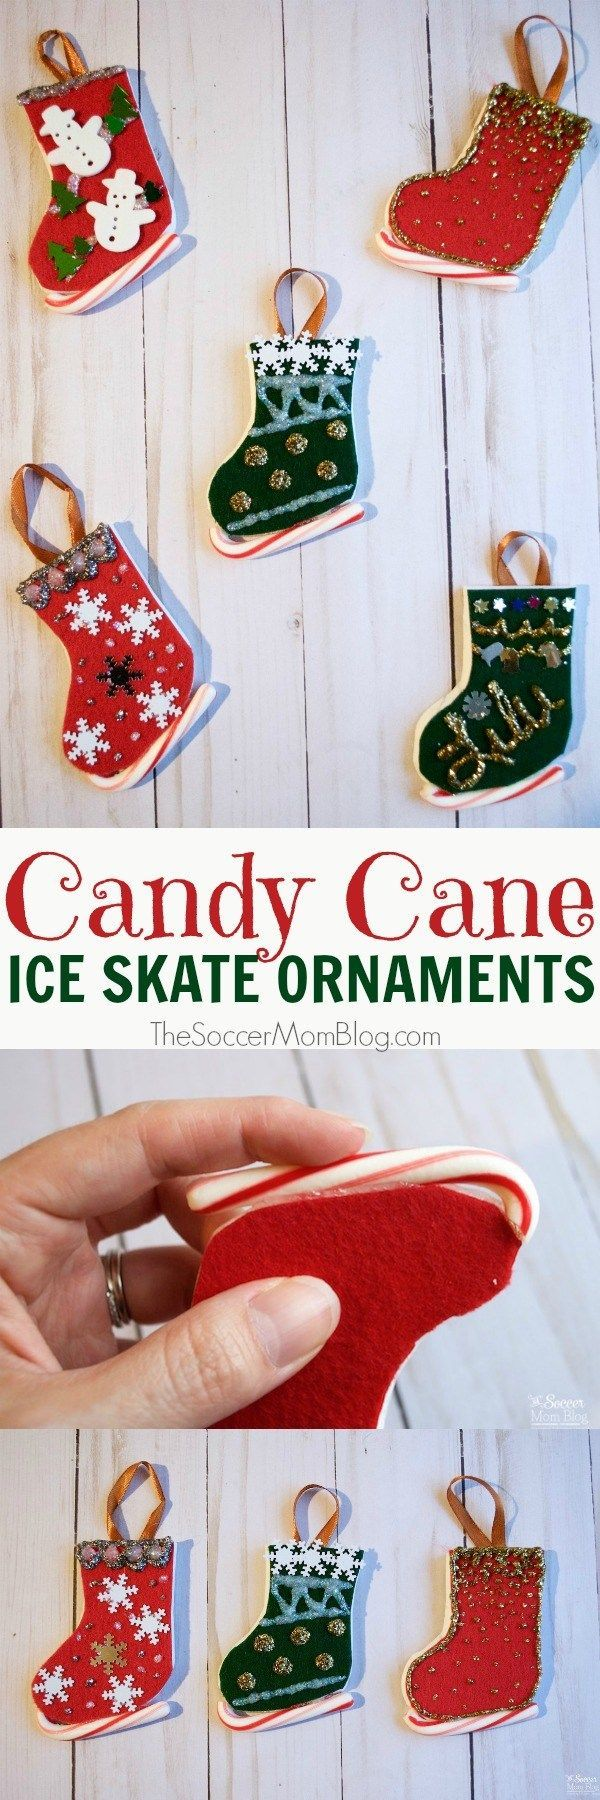 Ice cycle ornaments - Christmas Candy Cane Ice Skate Ornaments